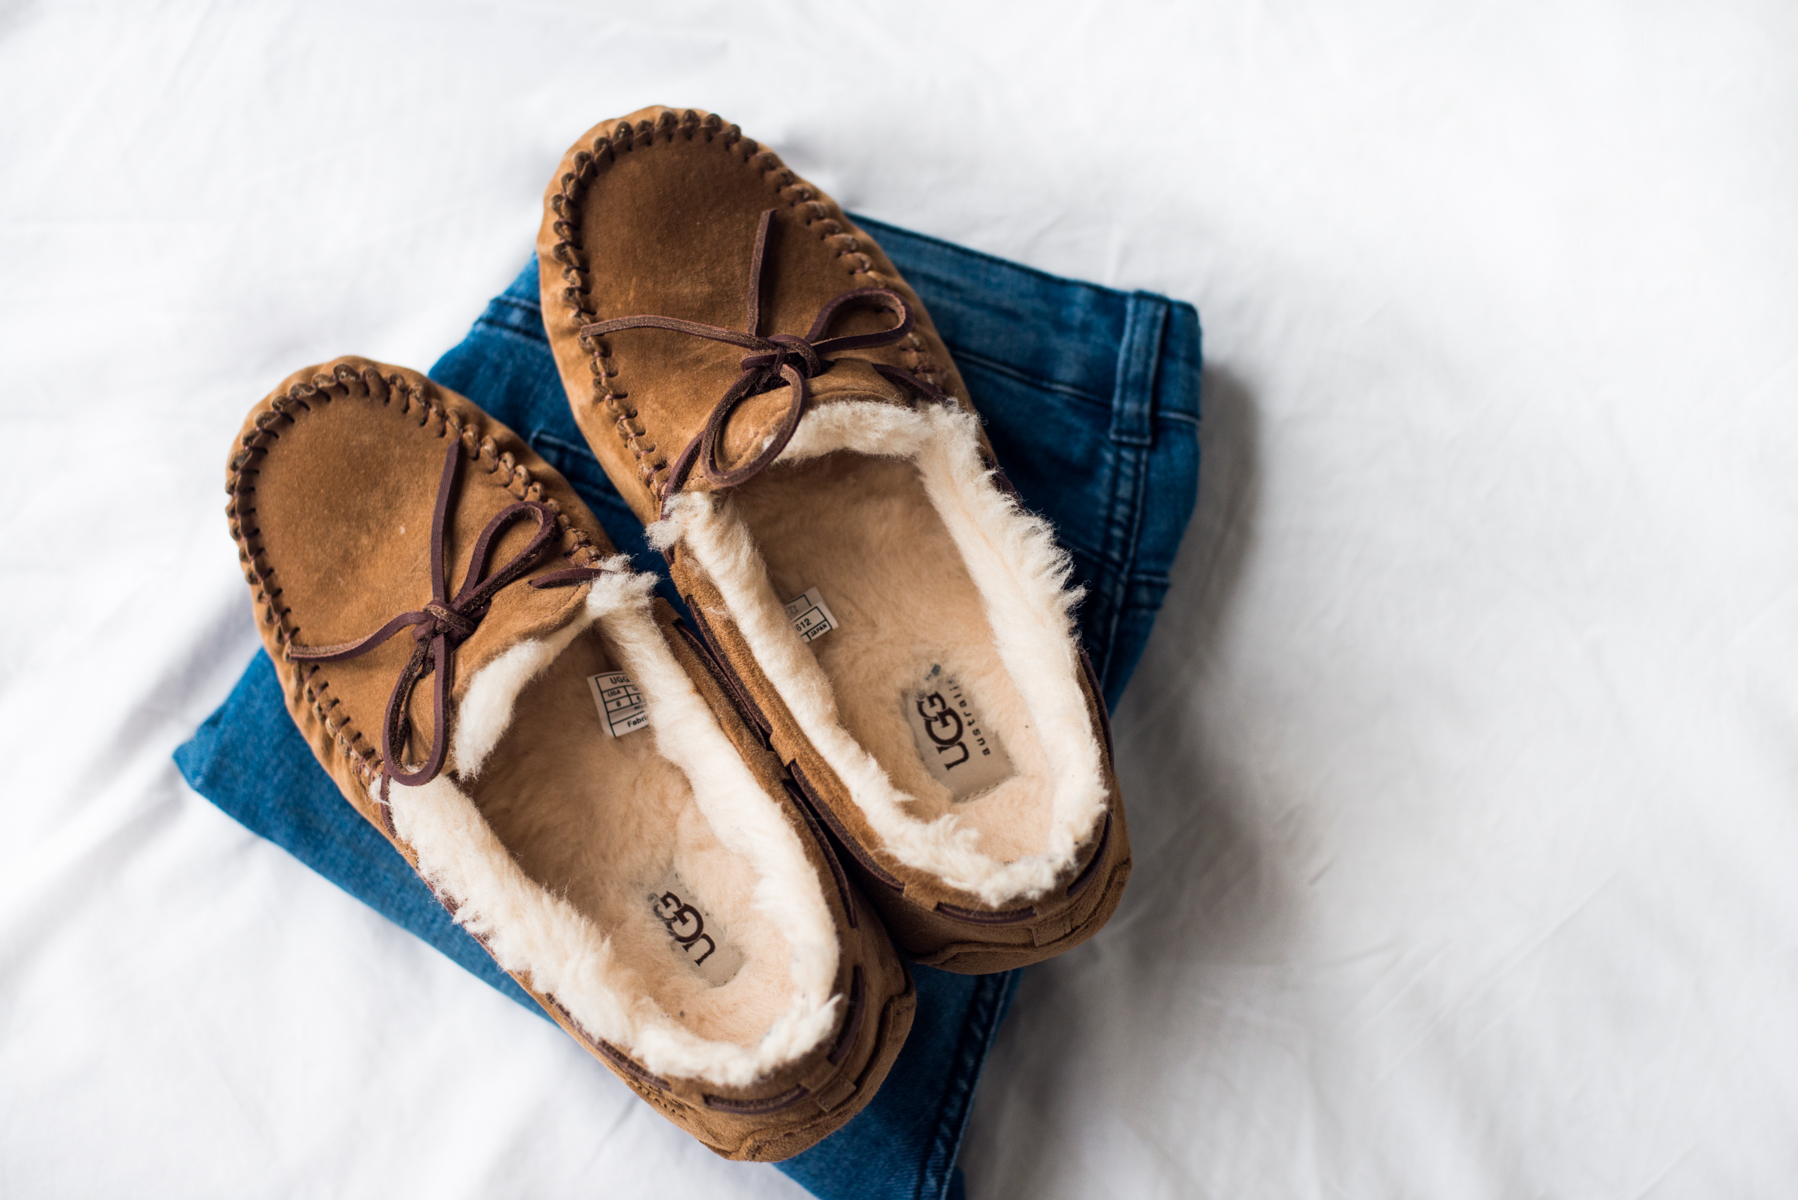 Ugg Slippers by Olivia Bossert